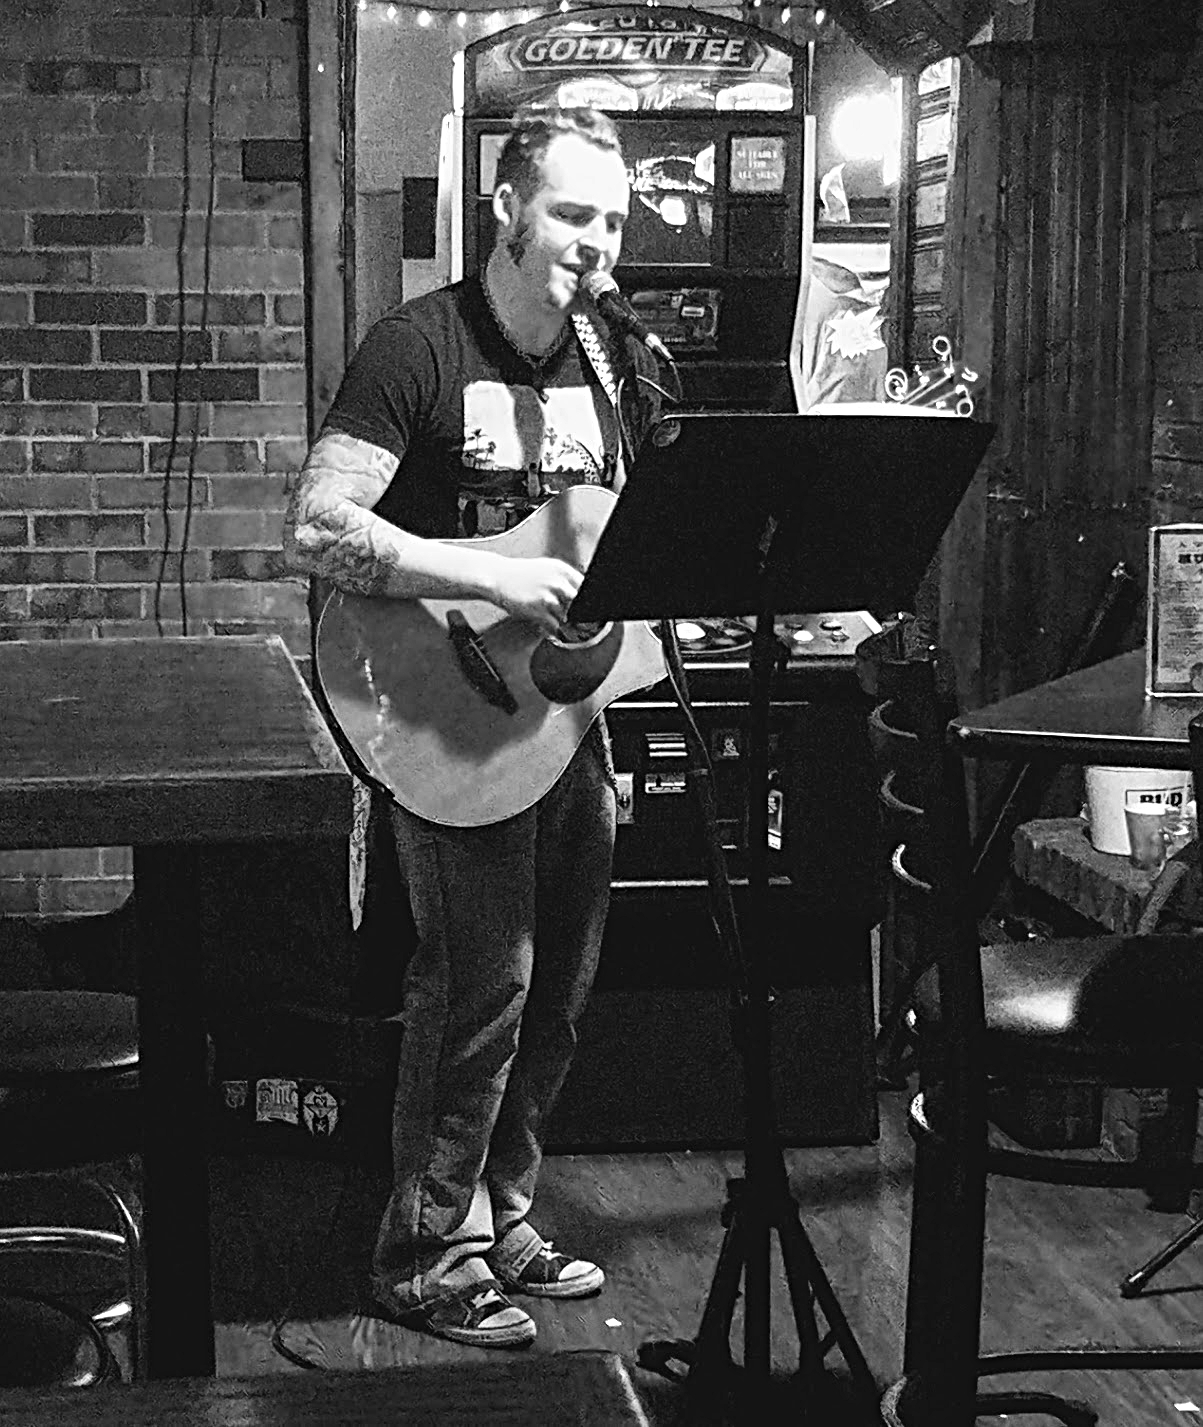 Chase Sieting performs at MD's Sports Bar & Grill Jan 13, 2018